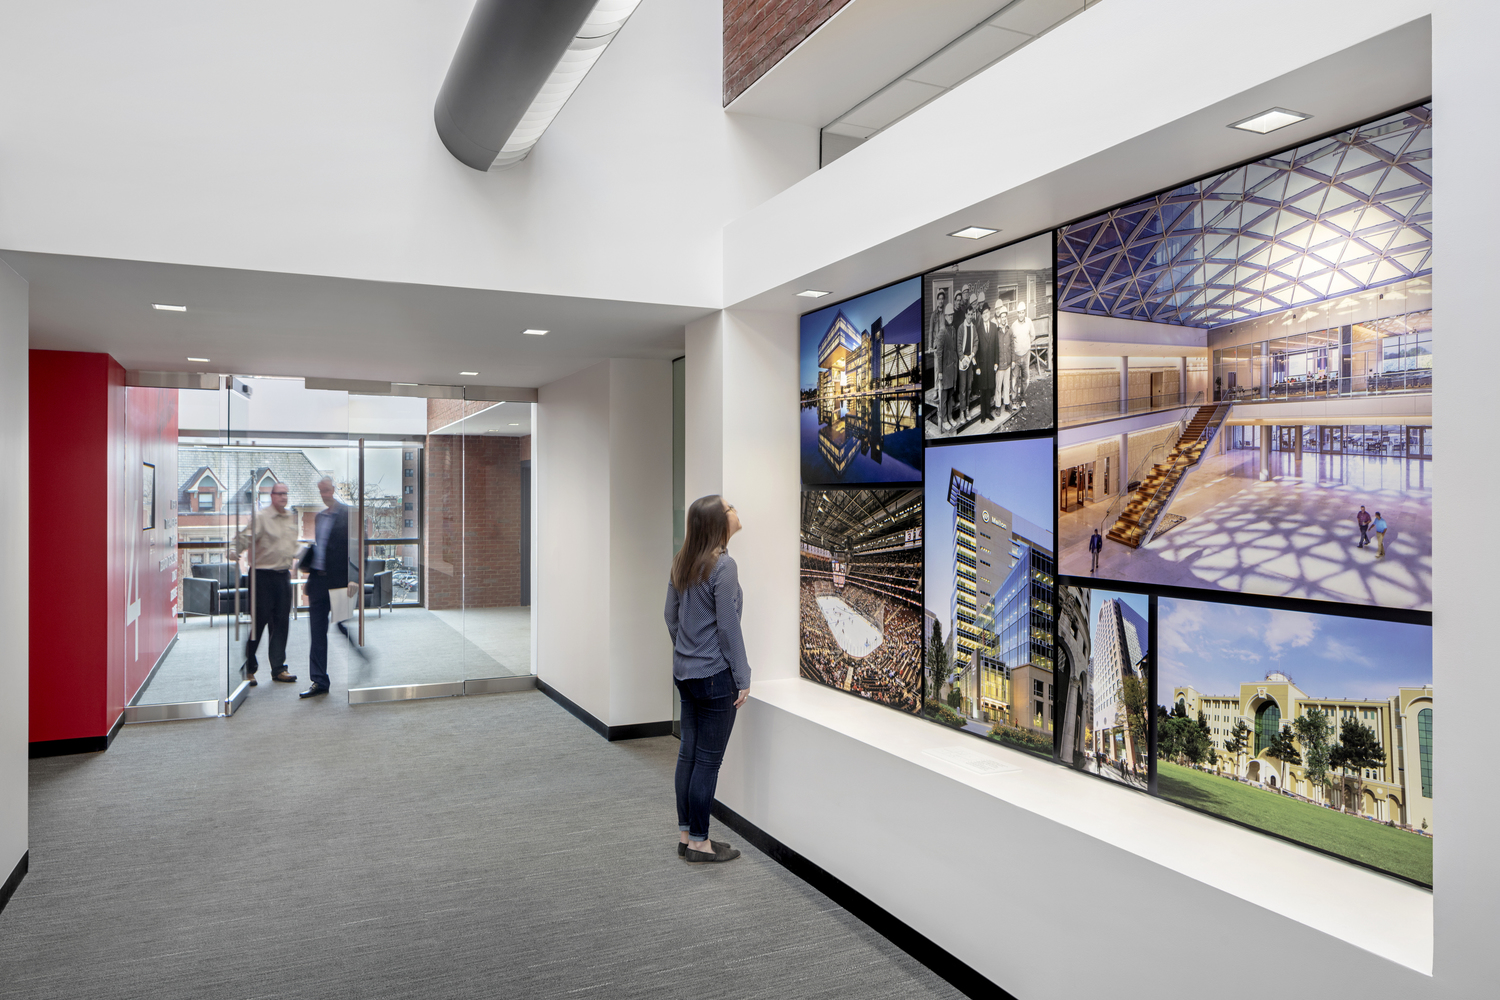 Since 1873 - Gilbane Building Company is celebrating over 140 years of existence. While undergoing a complete interior and architectural renovation for their 4-story headquarters in Providence, RI, the client realized that they needed to fully brand their space.